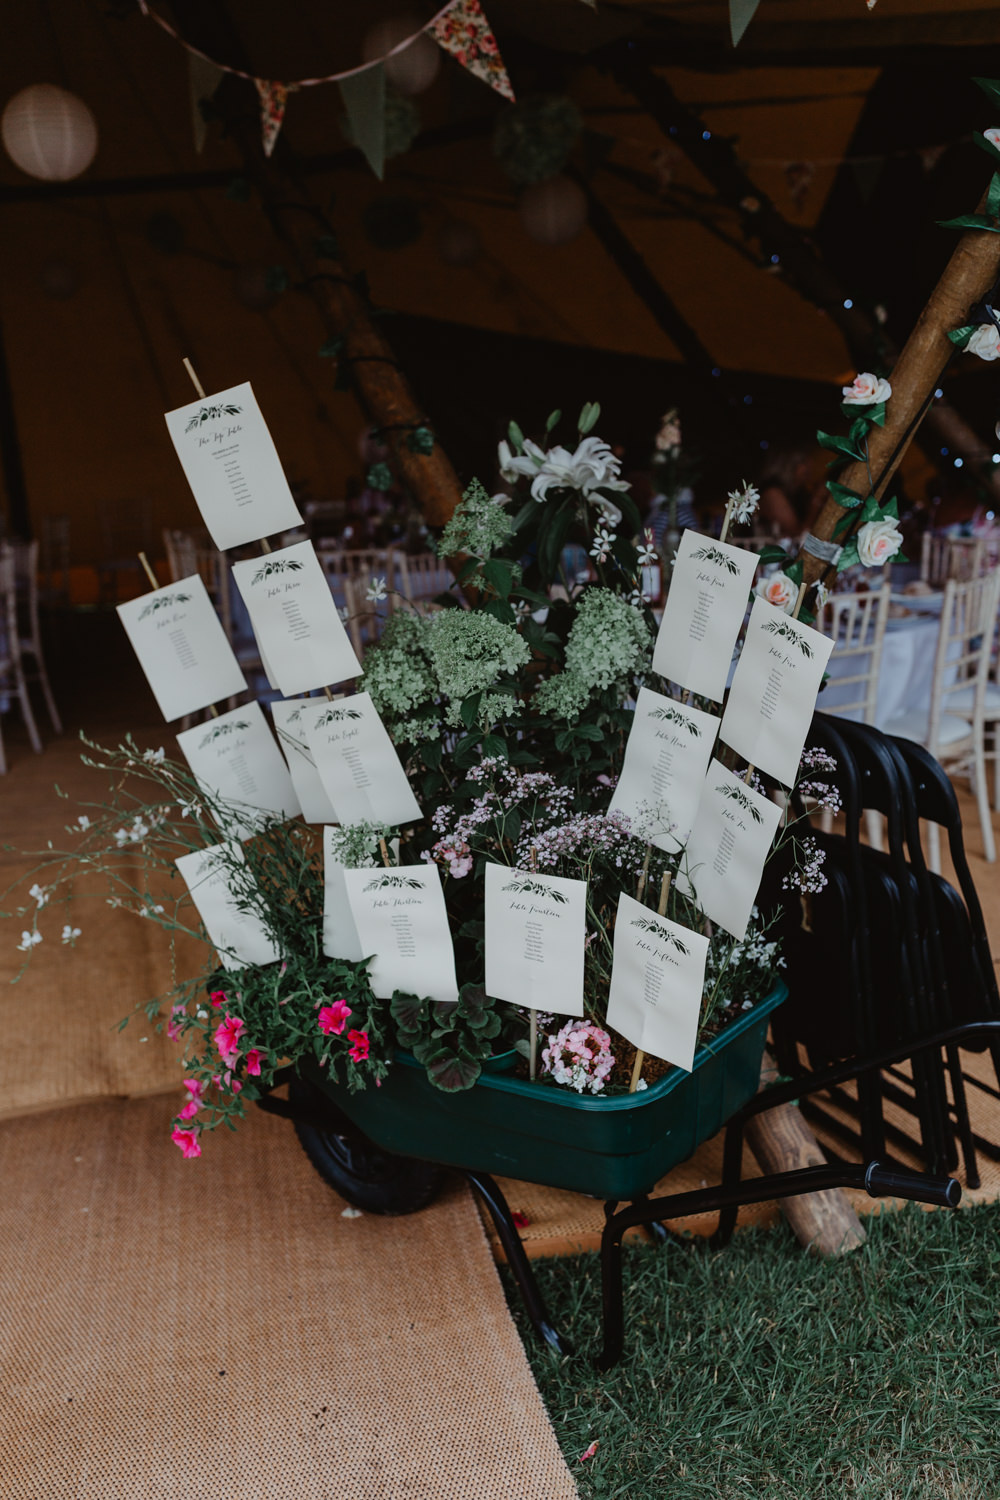 Table Plan Seating Chart Wheelbarrow Plants Flowers Hobbit Hill Wedding Stevie Jay Photography